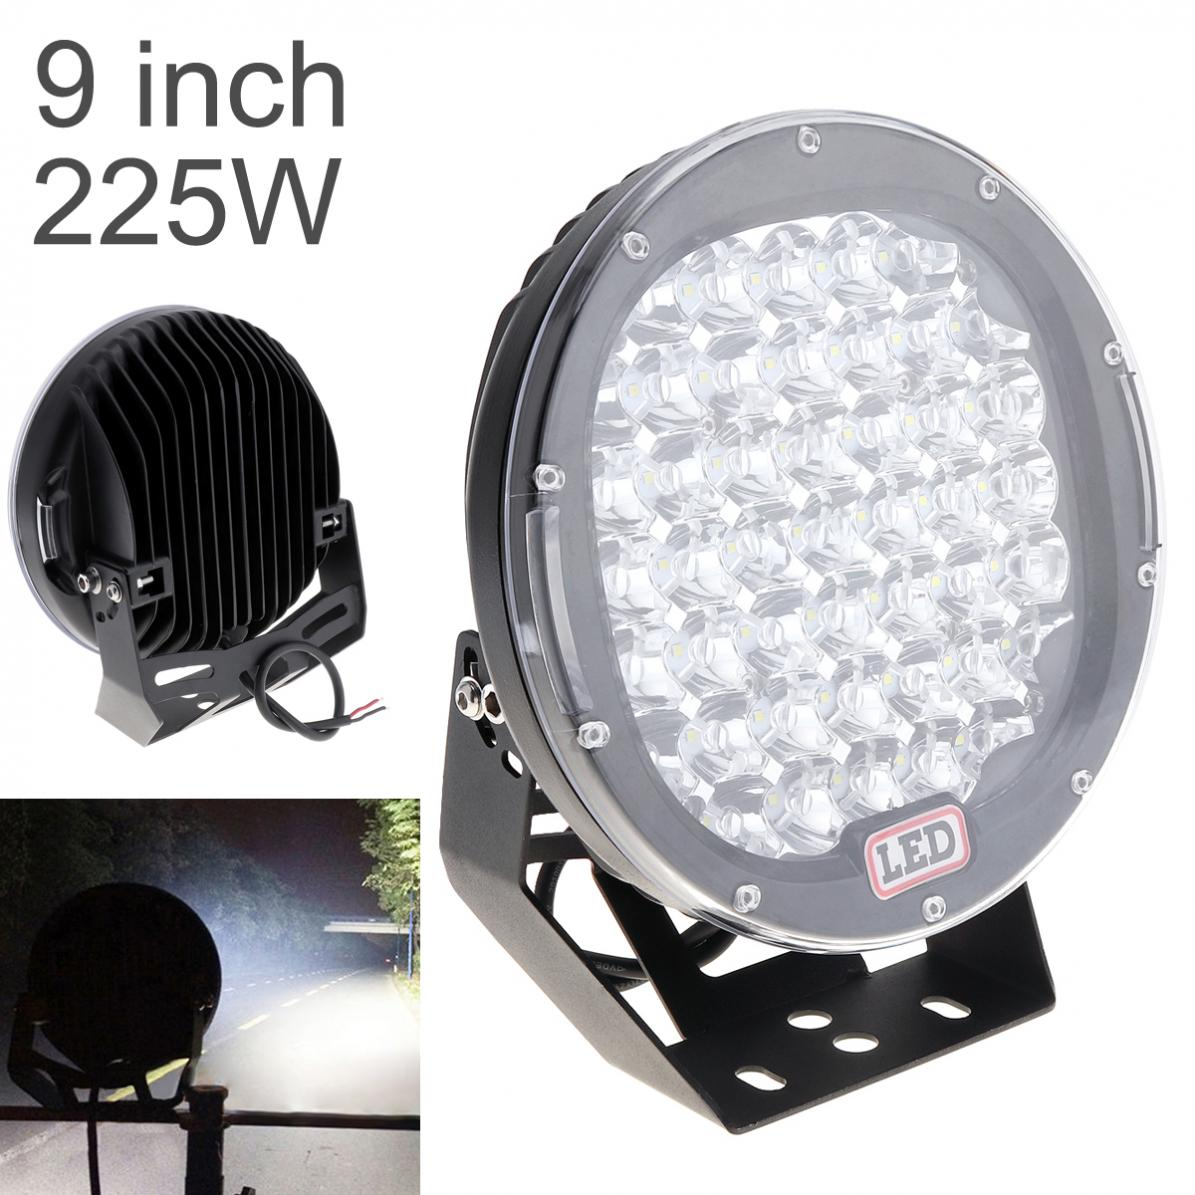 9'' Rounded 225W 45x LED Car Worklight Spot / Flood Light Vehicle Headlight Driving Lights for Offroad SUV ATV Truck Boat купить